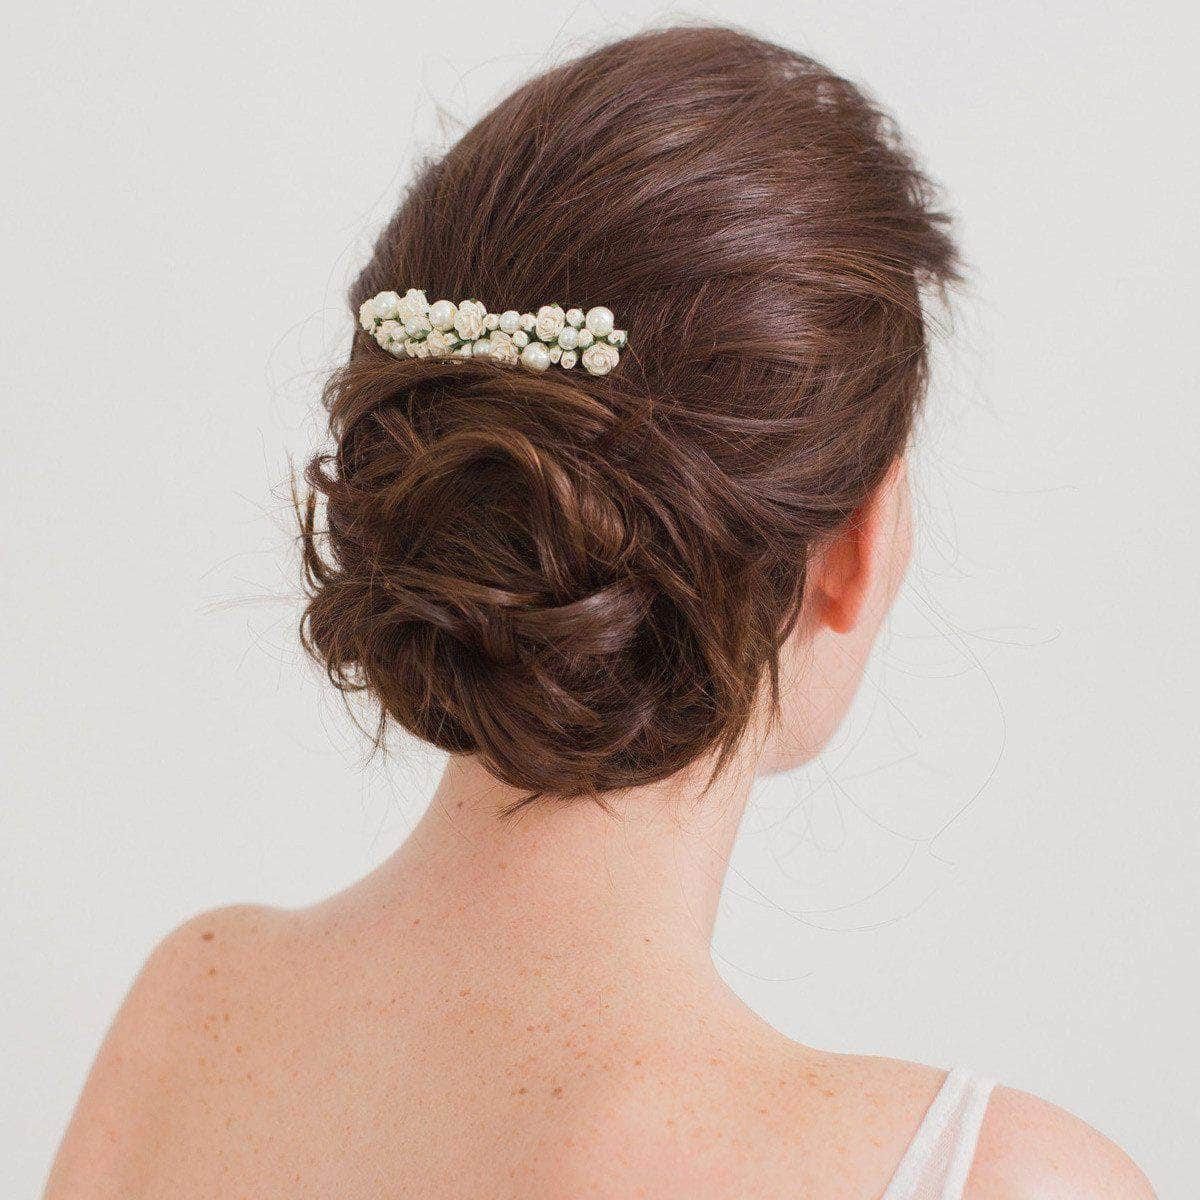 Floral Wedding Hair Comb By Britten: Wedding Hair Comb With Roses And Pearls - 'Rosa'